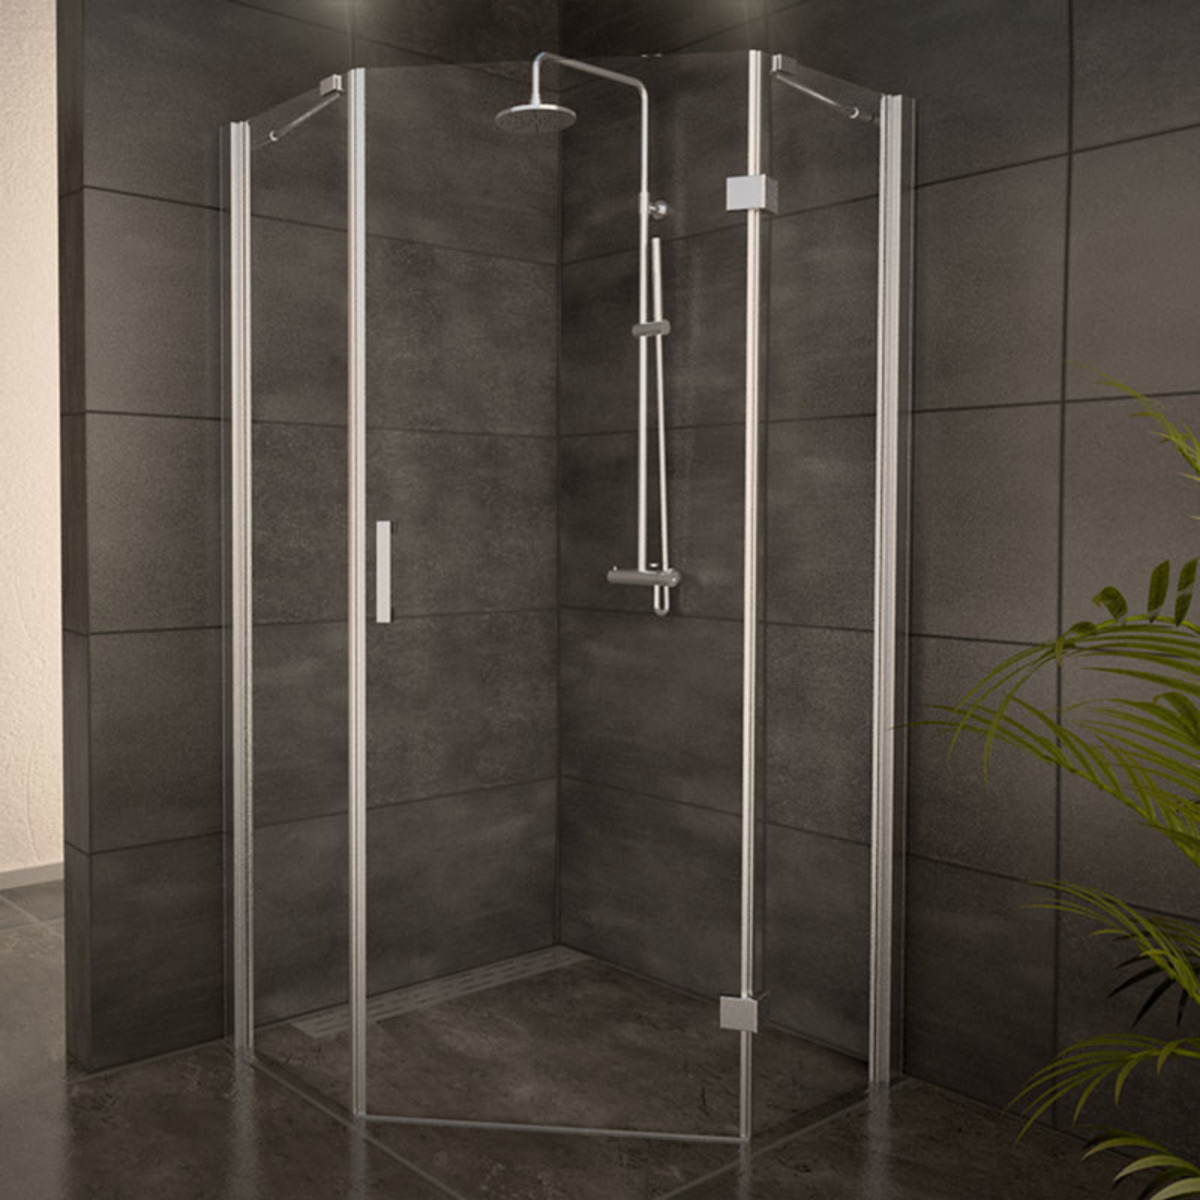 adema glass cabine de douche pentagone avec 1 porte pivotante 90x90x200cm vitre claire. Black Bedroom Furniture Sets. Home Design Ideas